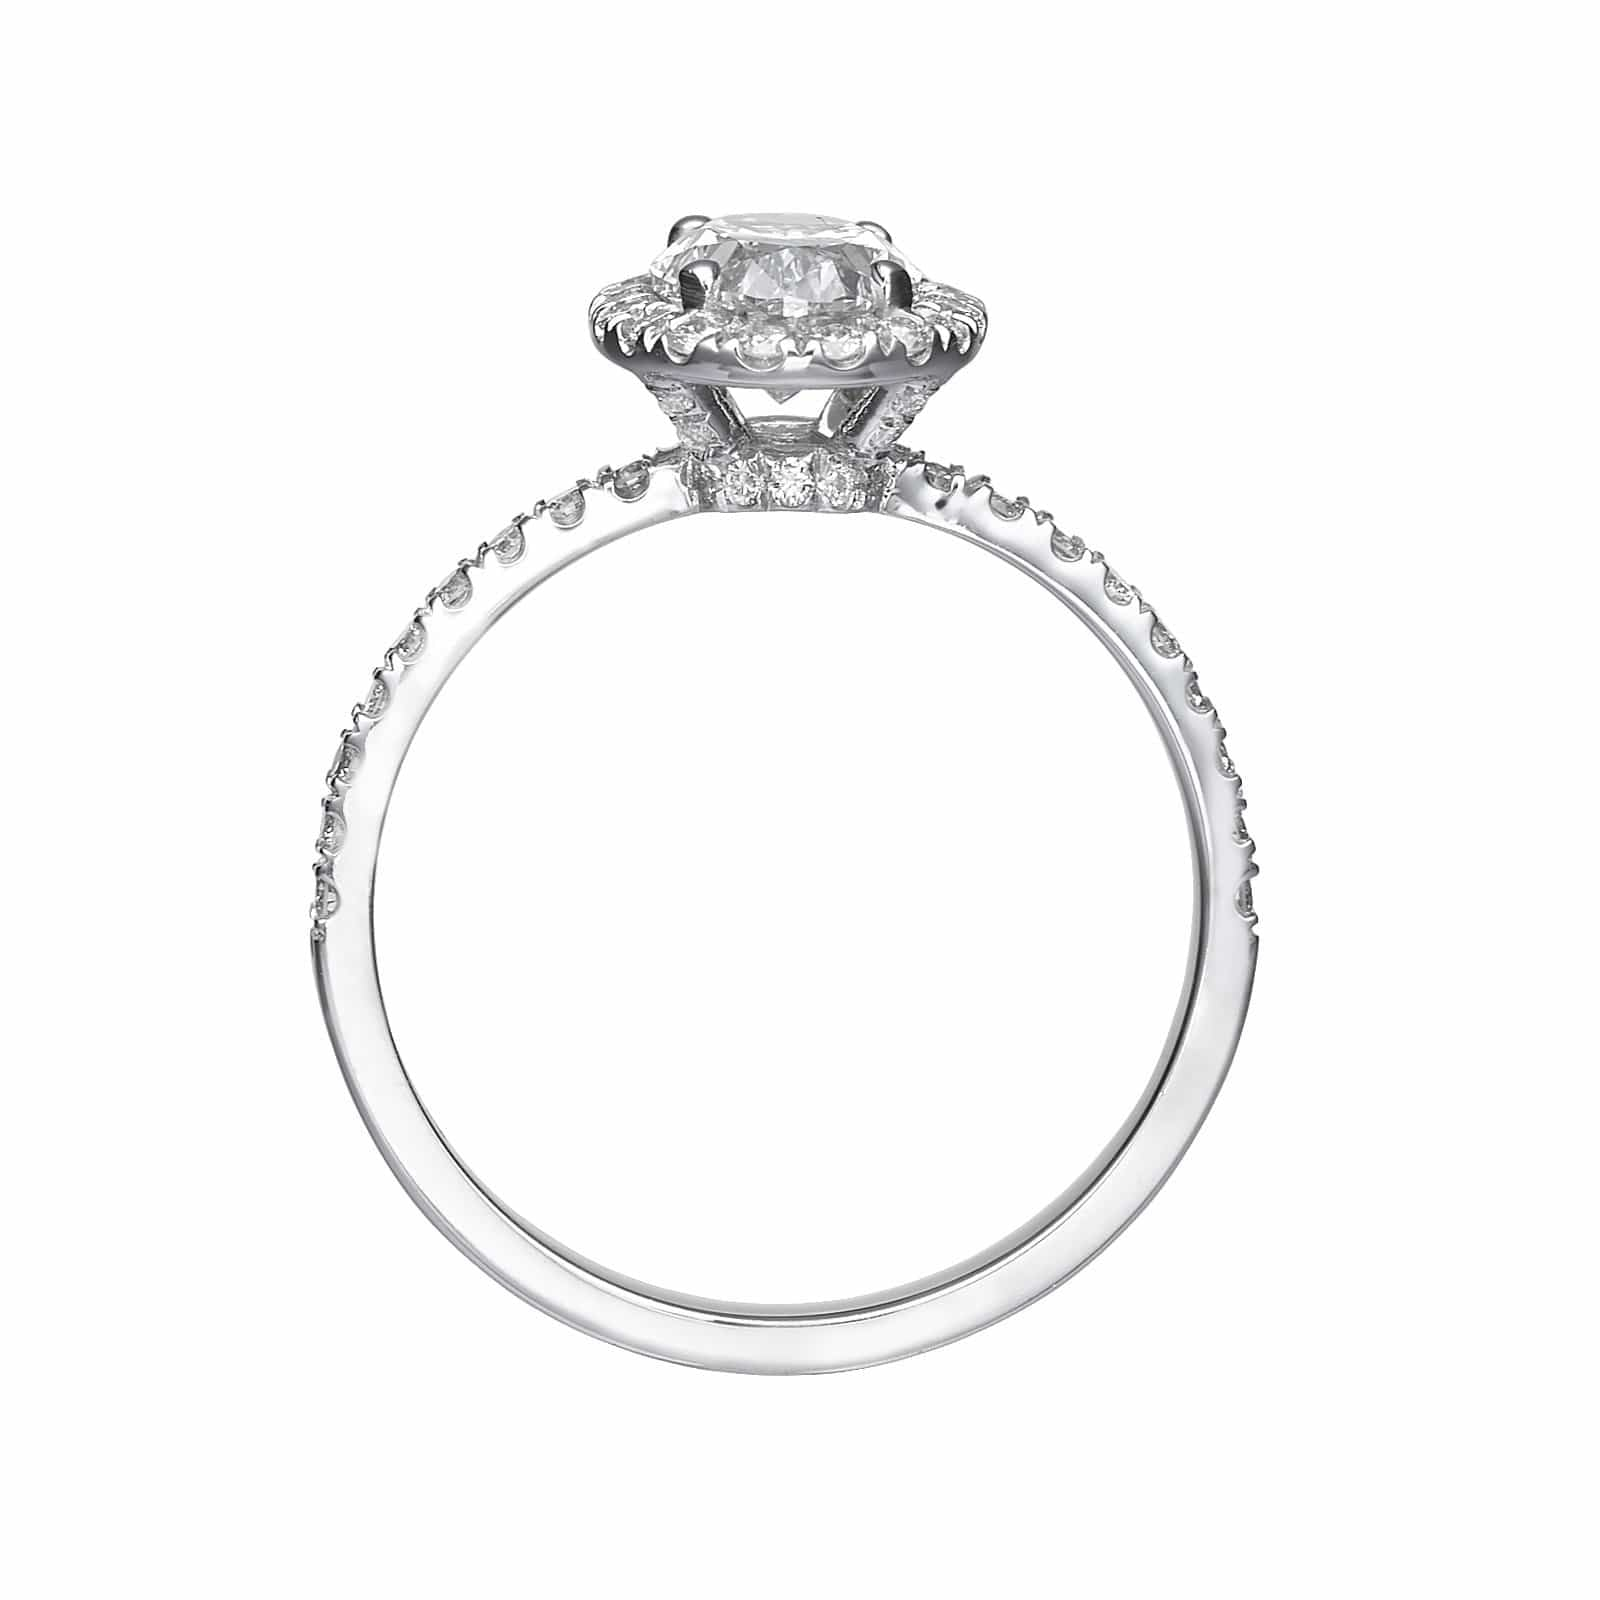 1.62 ct Oval Cut Diamond Engagement Ring